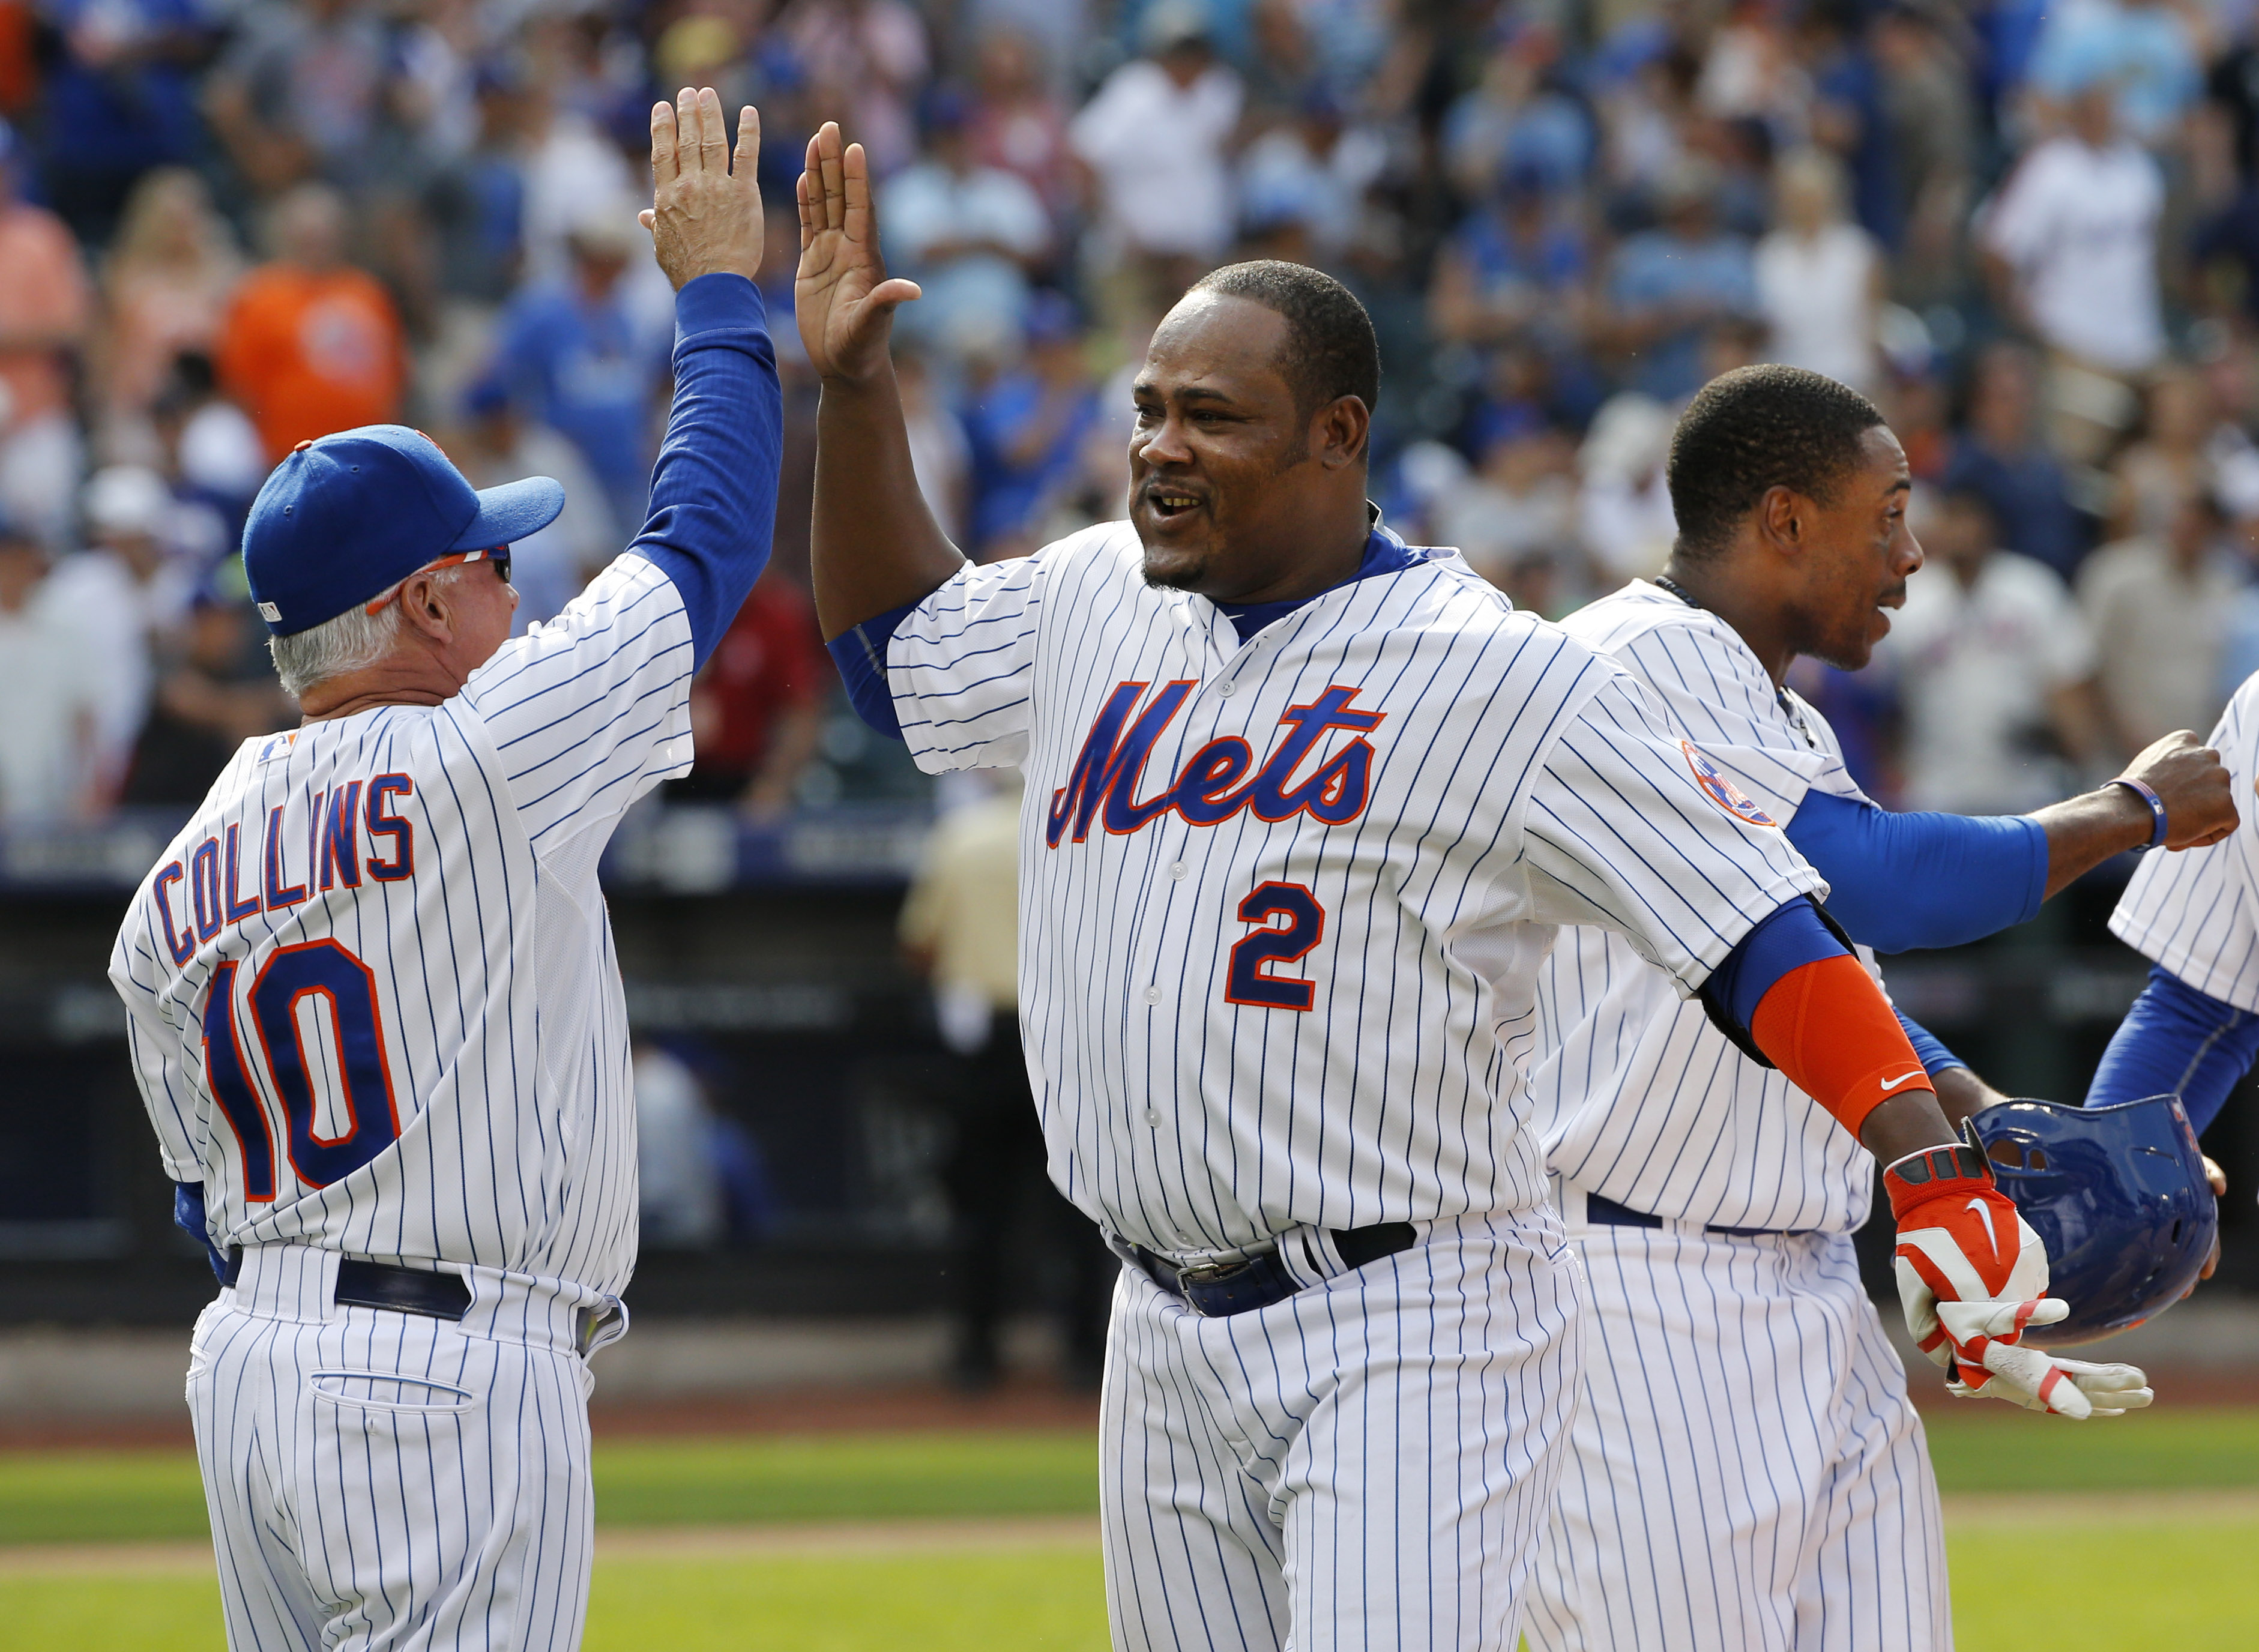 New York Mets manager Terry Collins (10) and the Mets Juan Uribe (2), who joined the team Saturday after a trade, celebrate after Uribe hit a tenth-inning, walk-off single to lift the Mets to a 3-2 victory over the Los Angeles Dodgers in a baseball game i